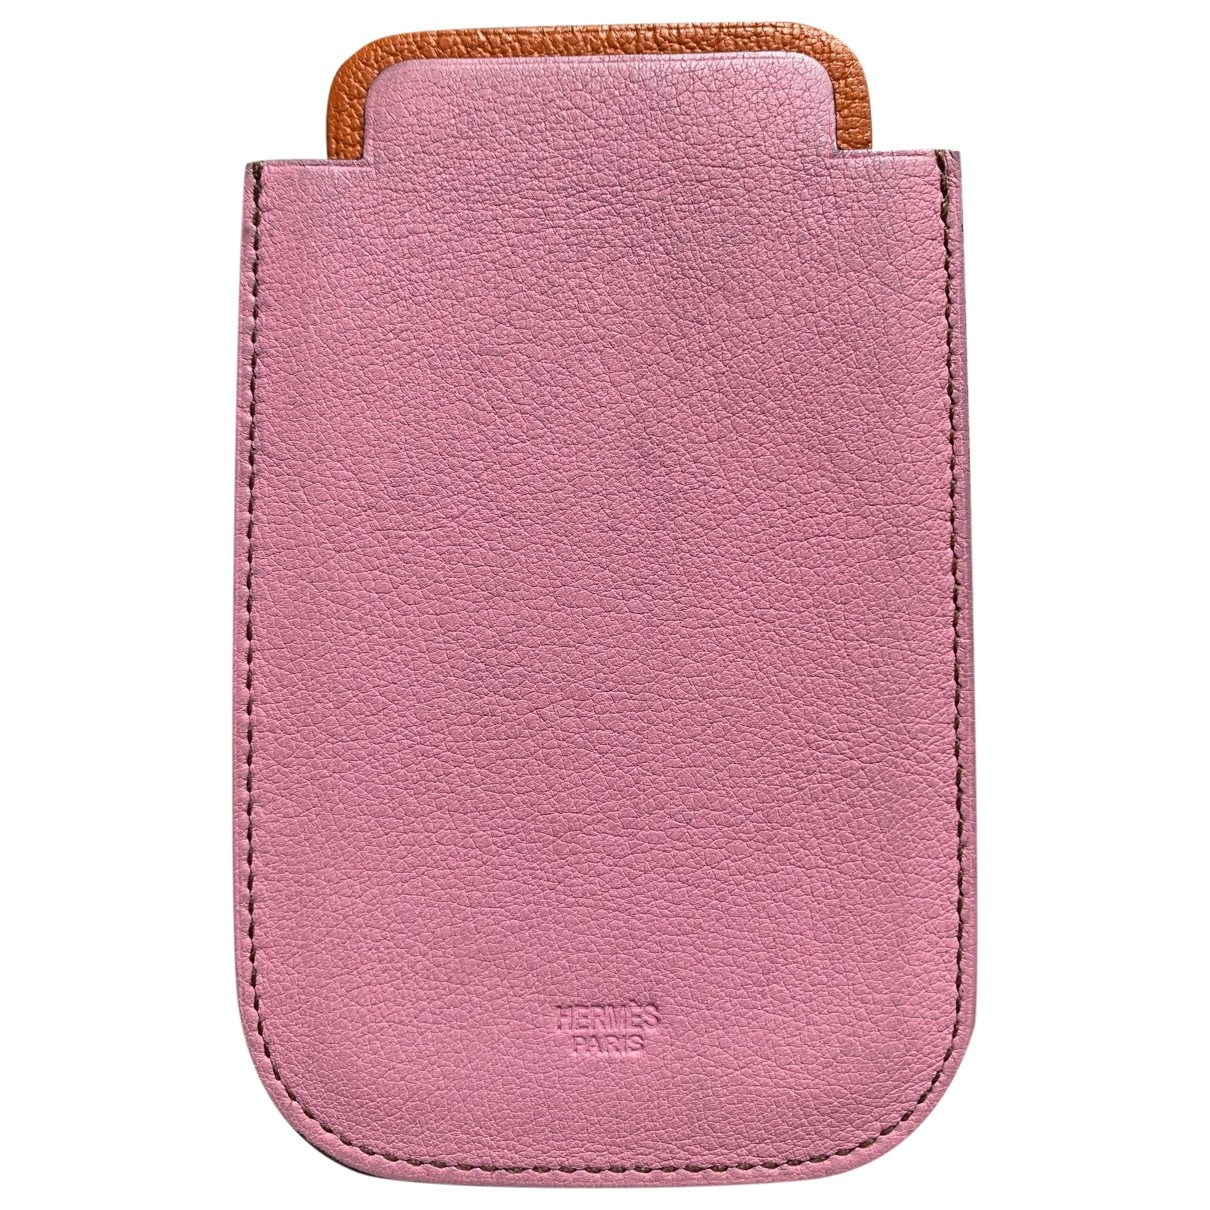 Hermès \N Pink Leather Accessories for Life & Living \N